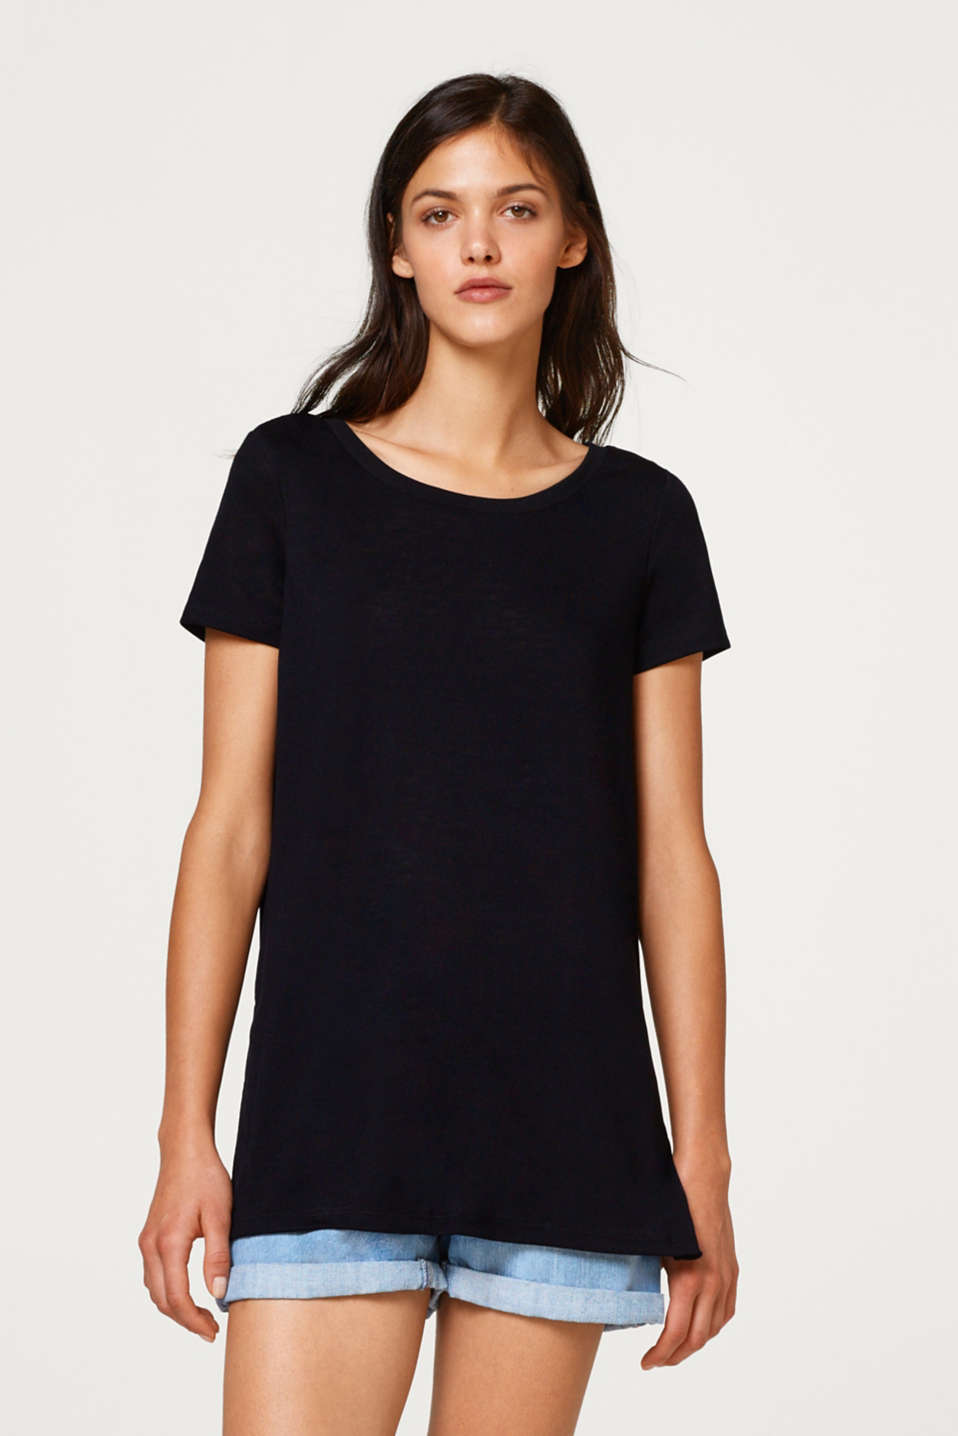 Esprit - Textured top with button placket on the back